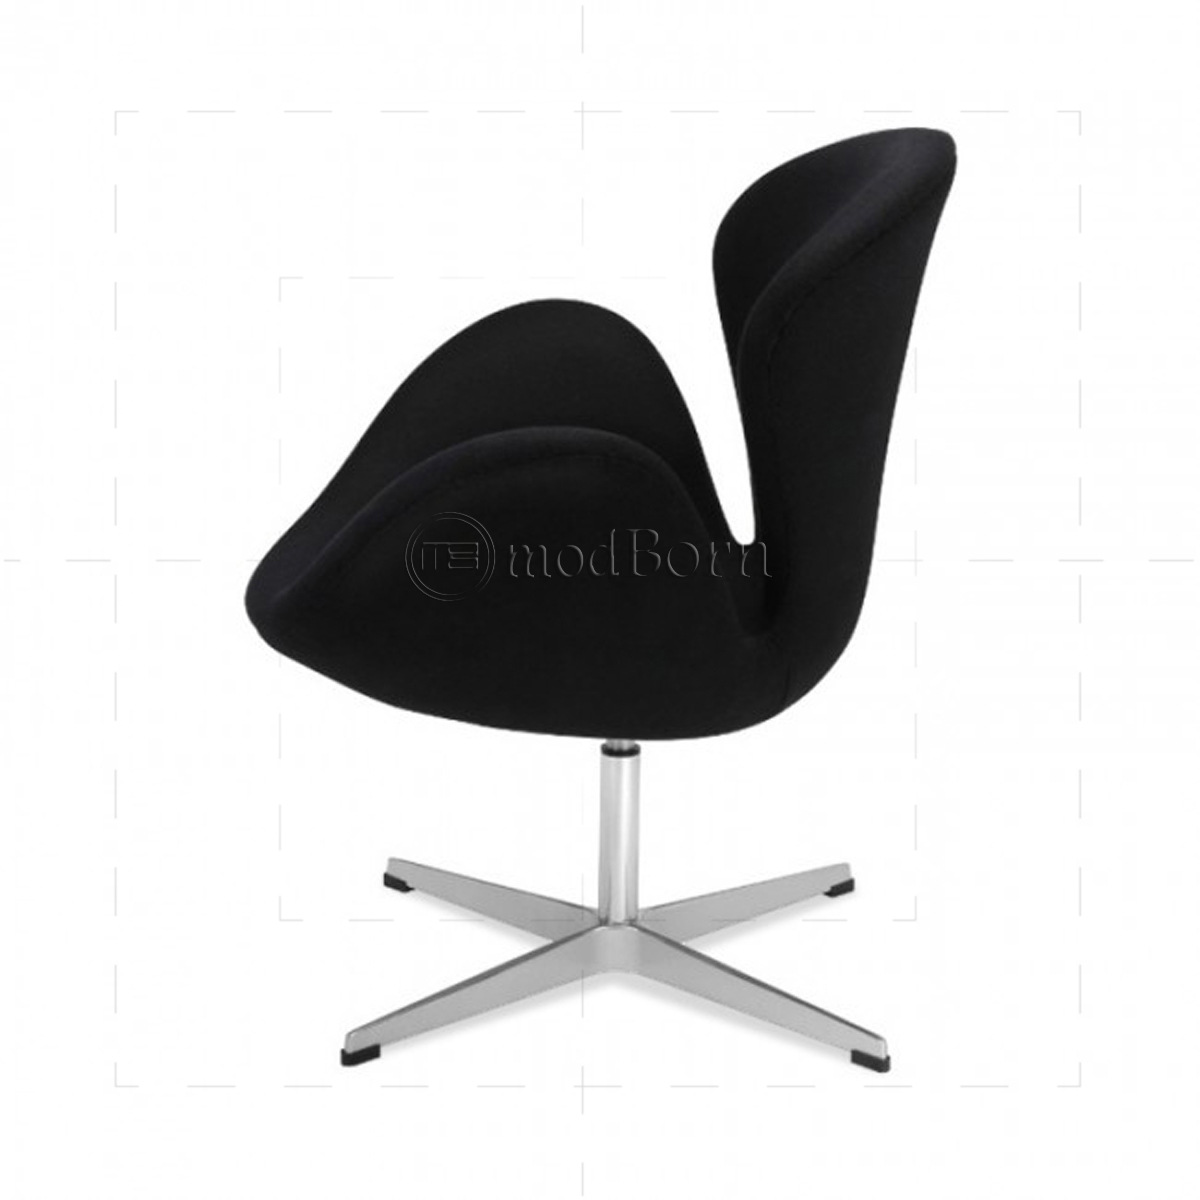 arne jacobsen style swan chair black. Black Bedroom Furniture Sets. Home Design Ideas